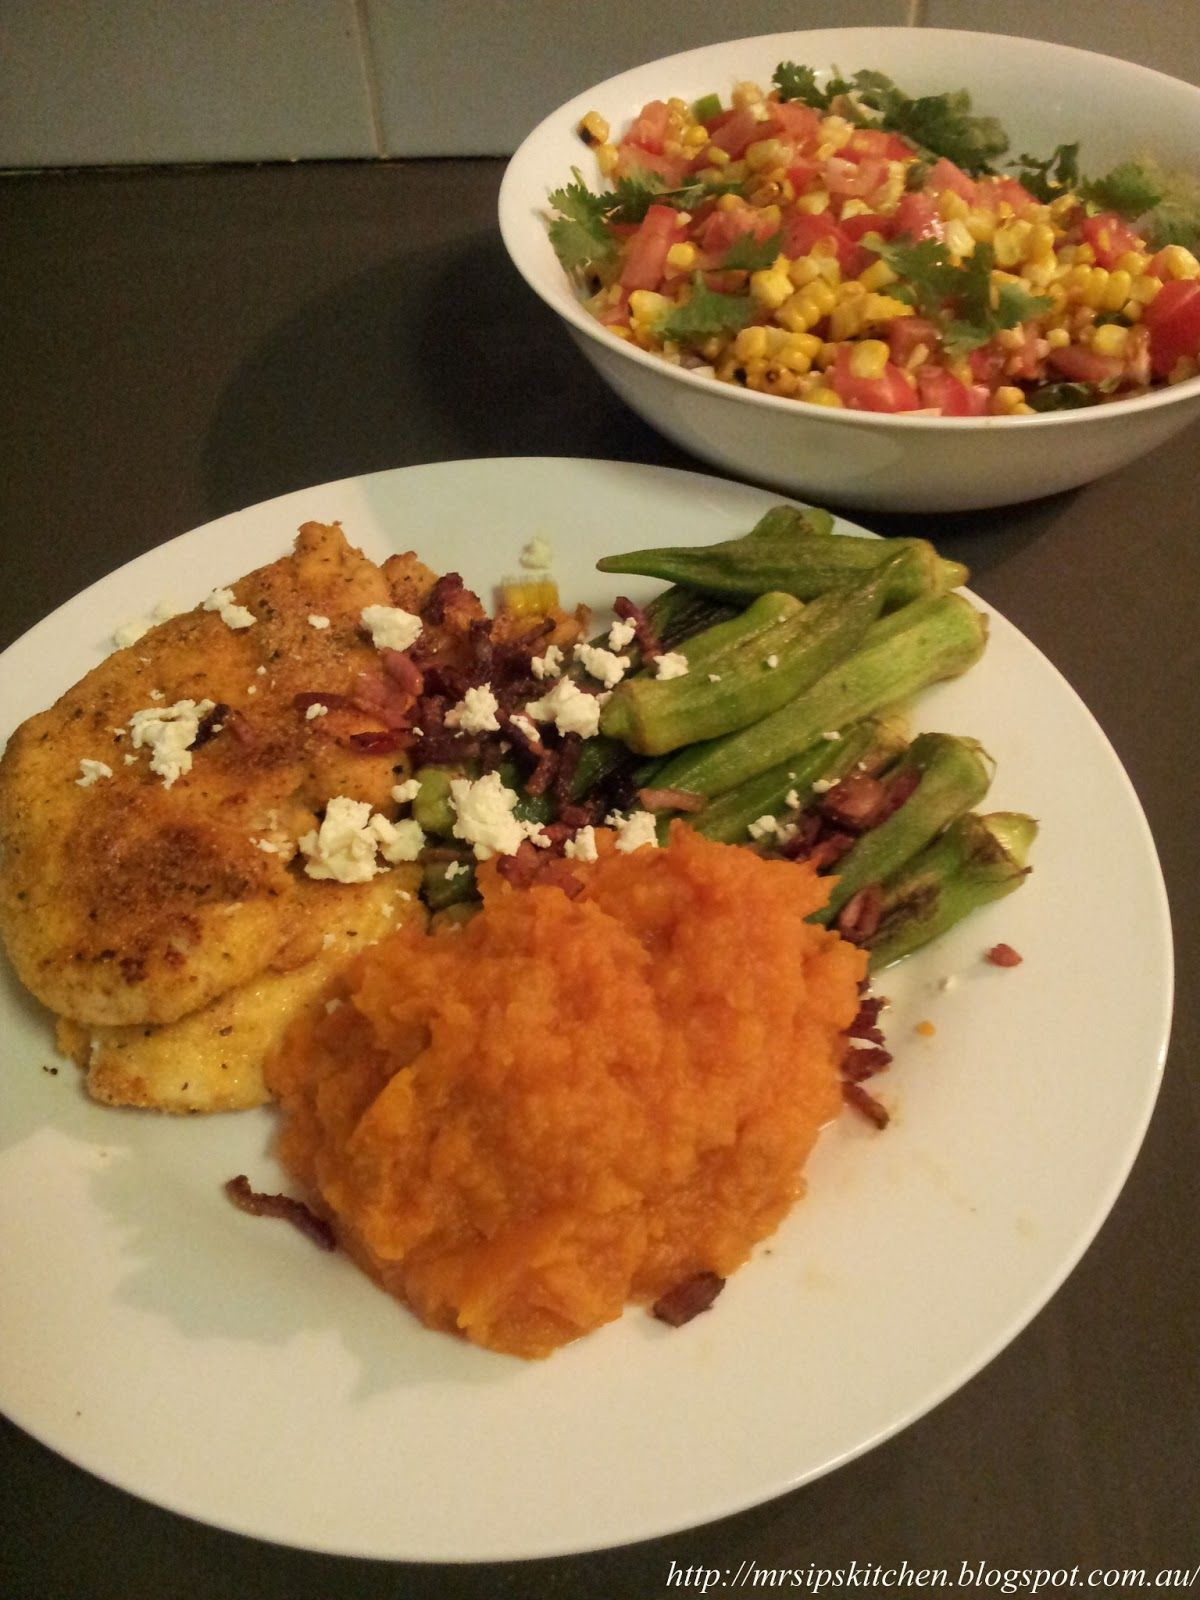 Jamie Oliver S 15 Minute Meals Spicy Cajun Chicken With Smashed Sweet Potato Fresh Corn Salsa Jamie Oliver 15 Minute Meals 15 Minute Meals Fresh Corn Salsa